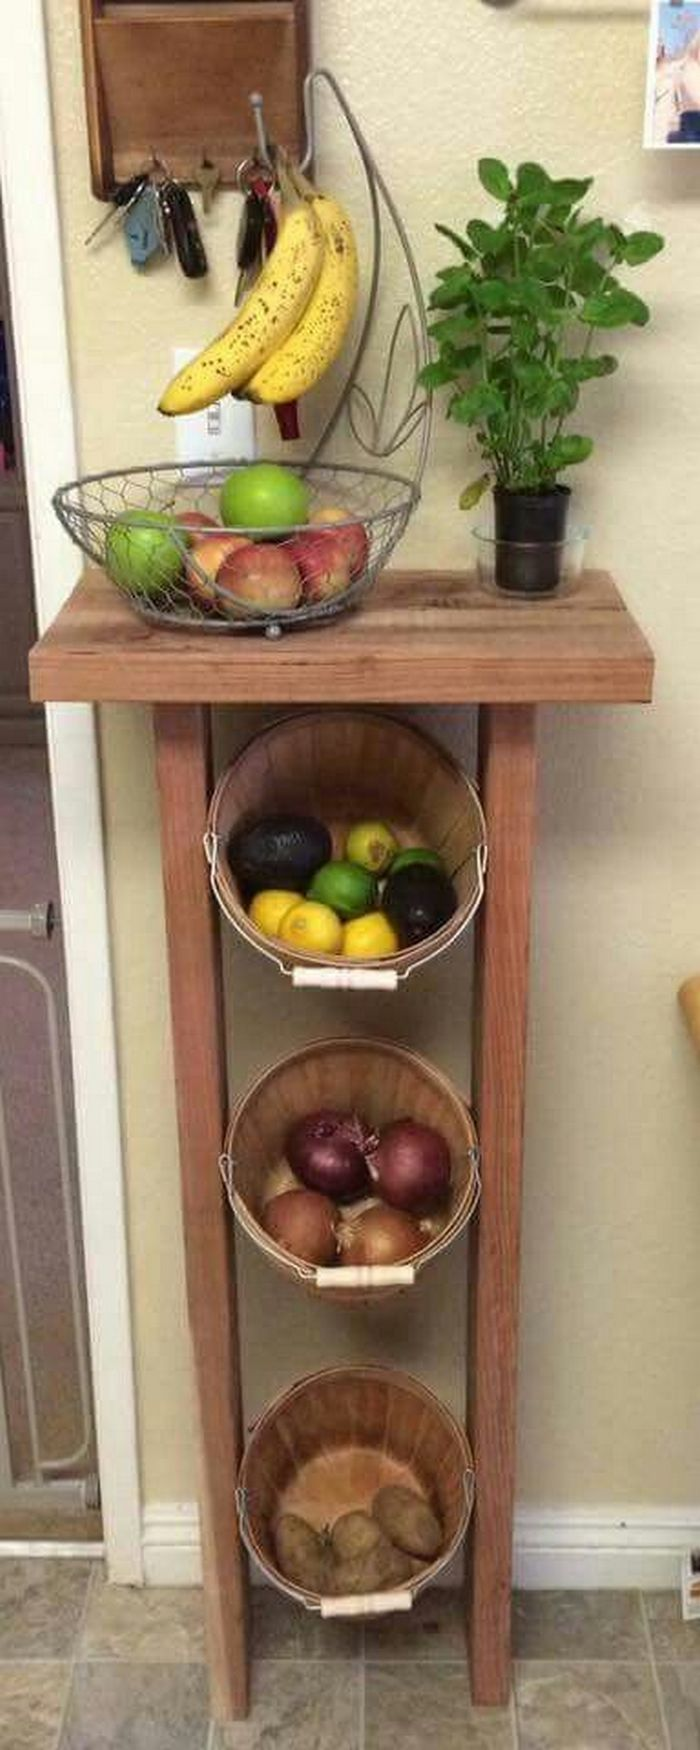 25 best ideas about vegetable storage on pinterest kitchen wall storage fruit kitchen decor. Black Bedroom Furniture Sets. Home Design Ideas